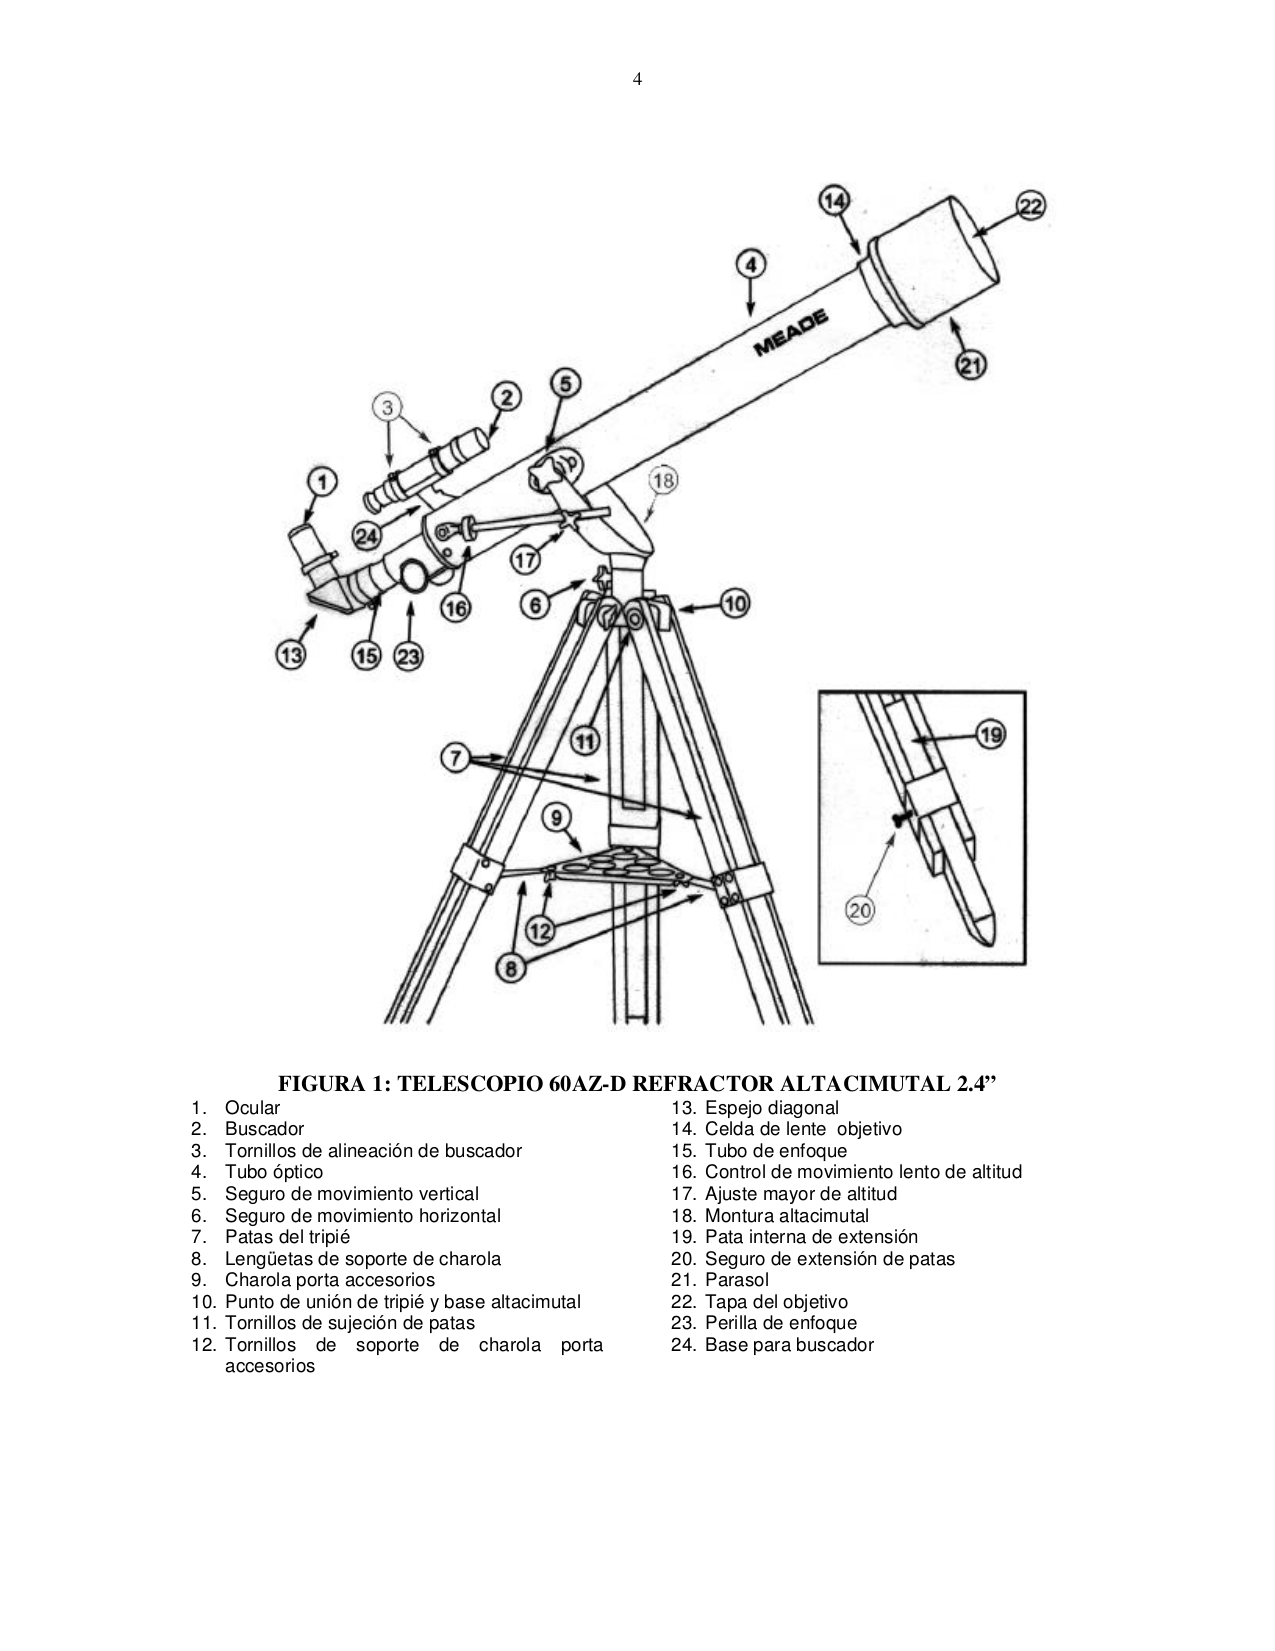 Manual For Meade Telescope Polaris 60az D